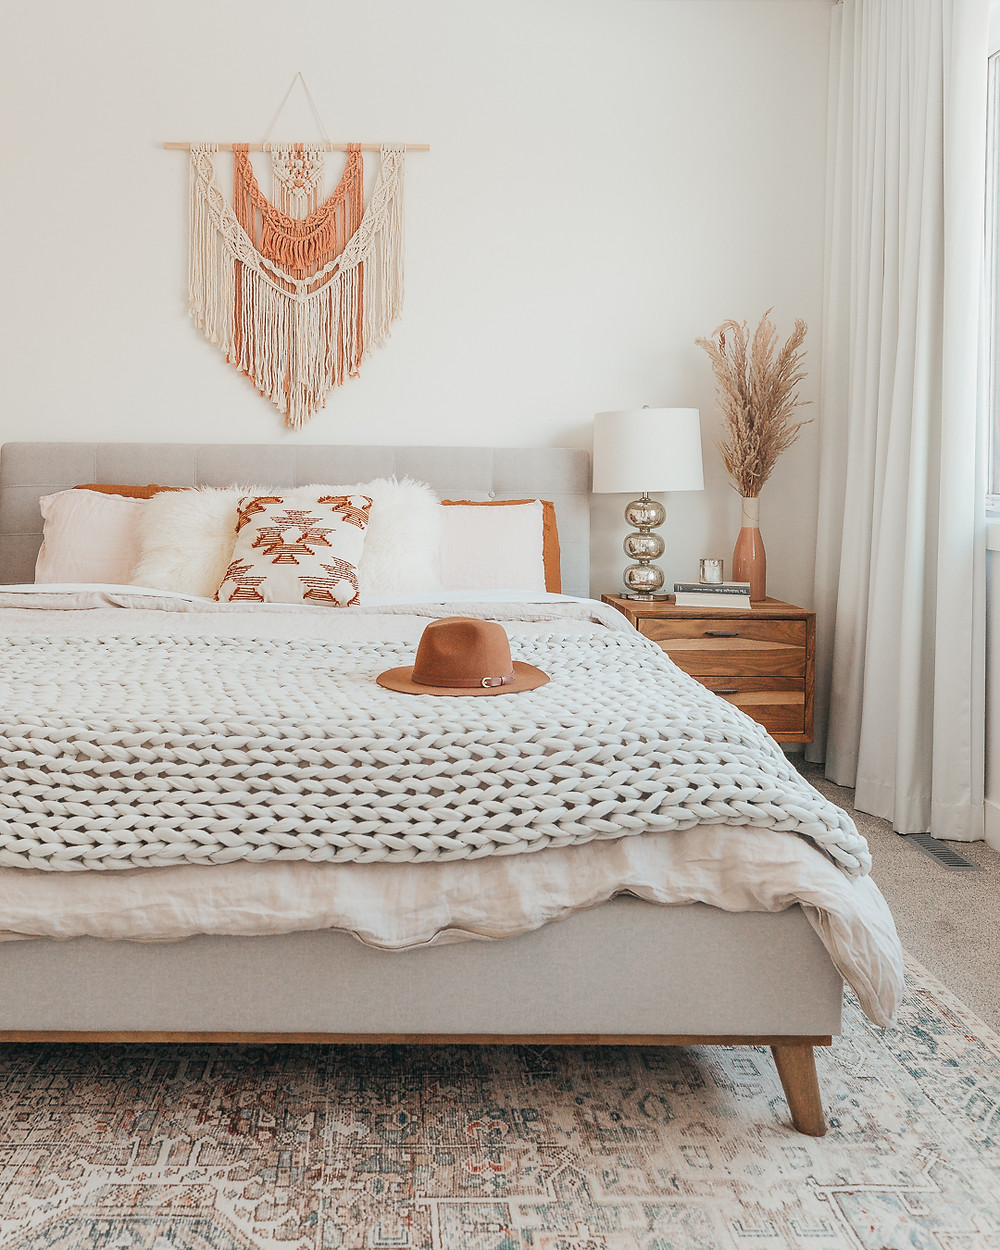 Cream and blush macramé wall hanging over grey headboard white and rust sheets with chunky grey throw on end of bed hat on end of bed area rug with wood side table and silver lamp with pampas grass in pink vase